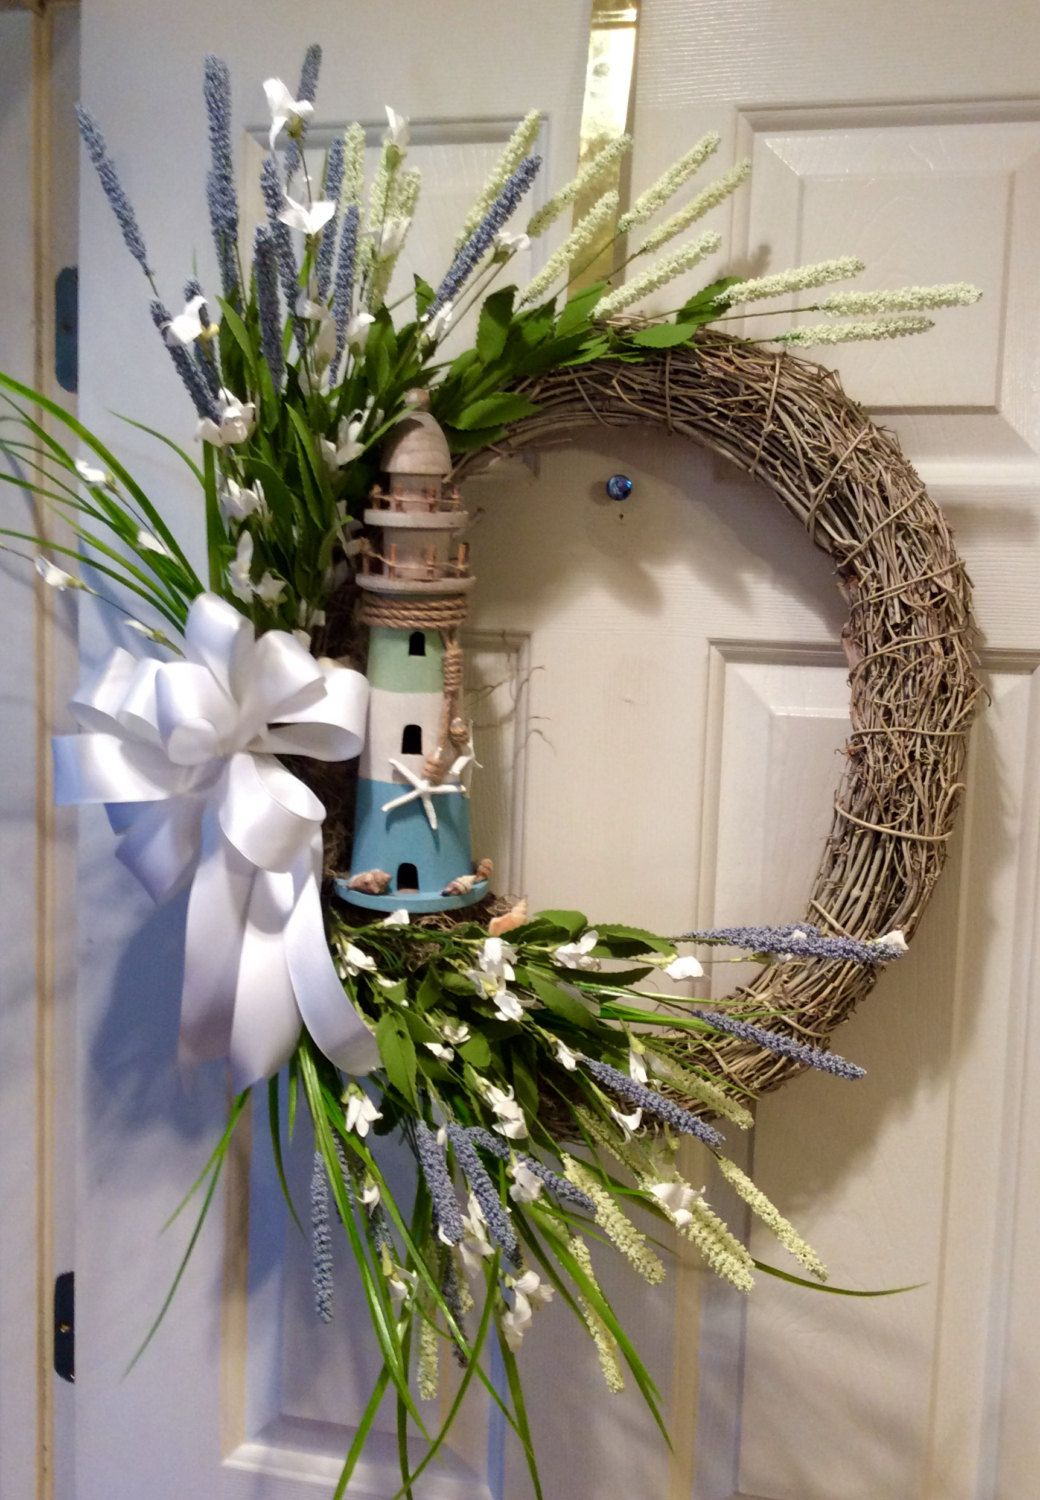 Nautical Beach Grapevine Wreath By Madeforbri On Etsy With Images